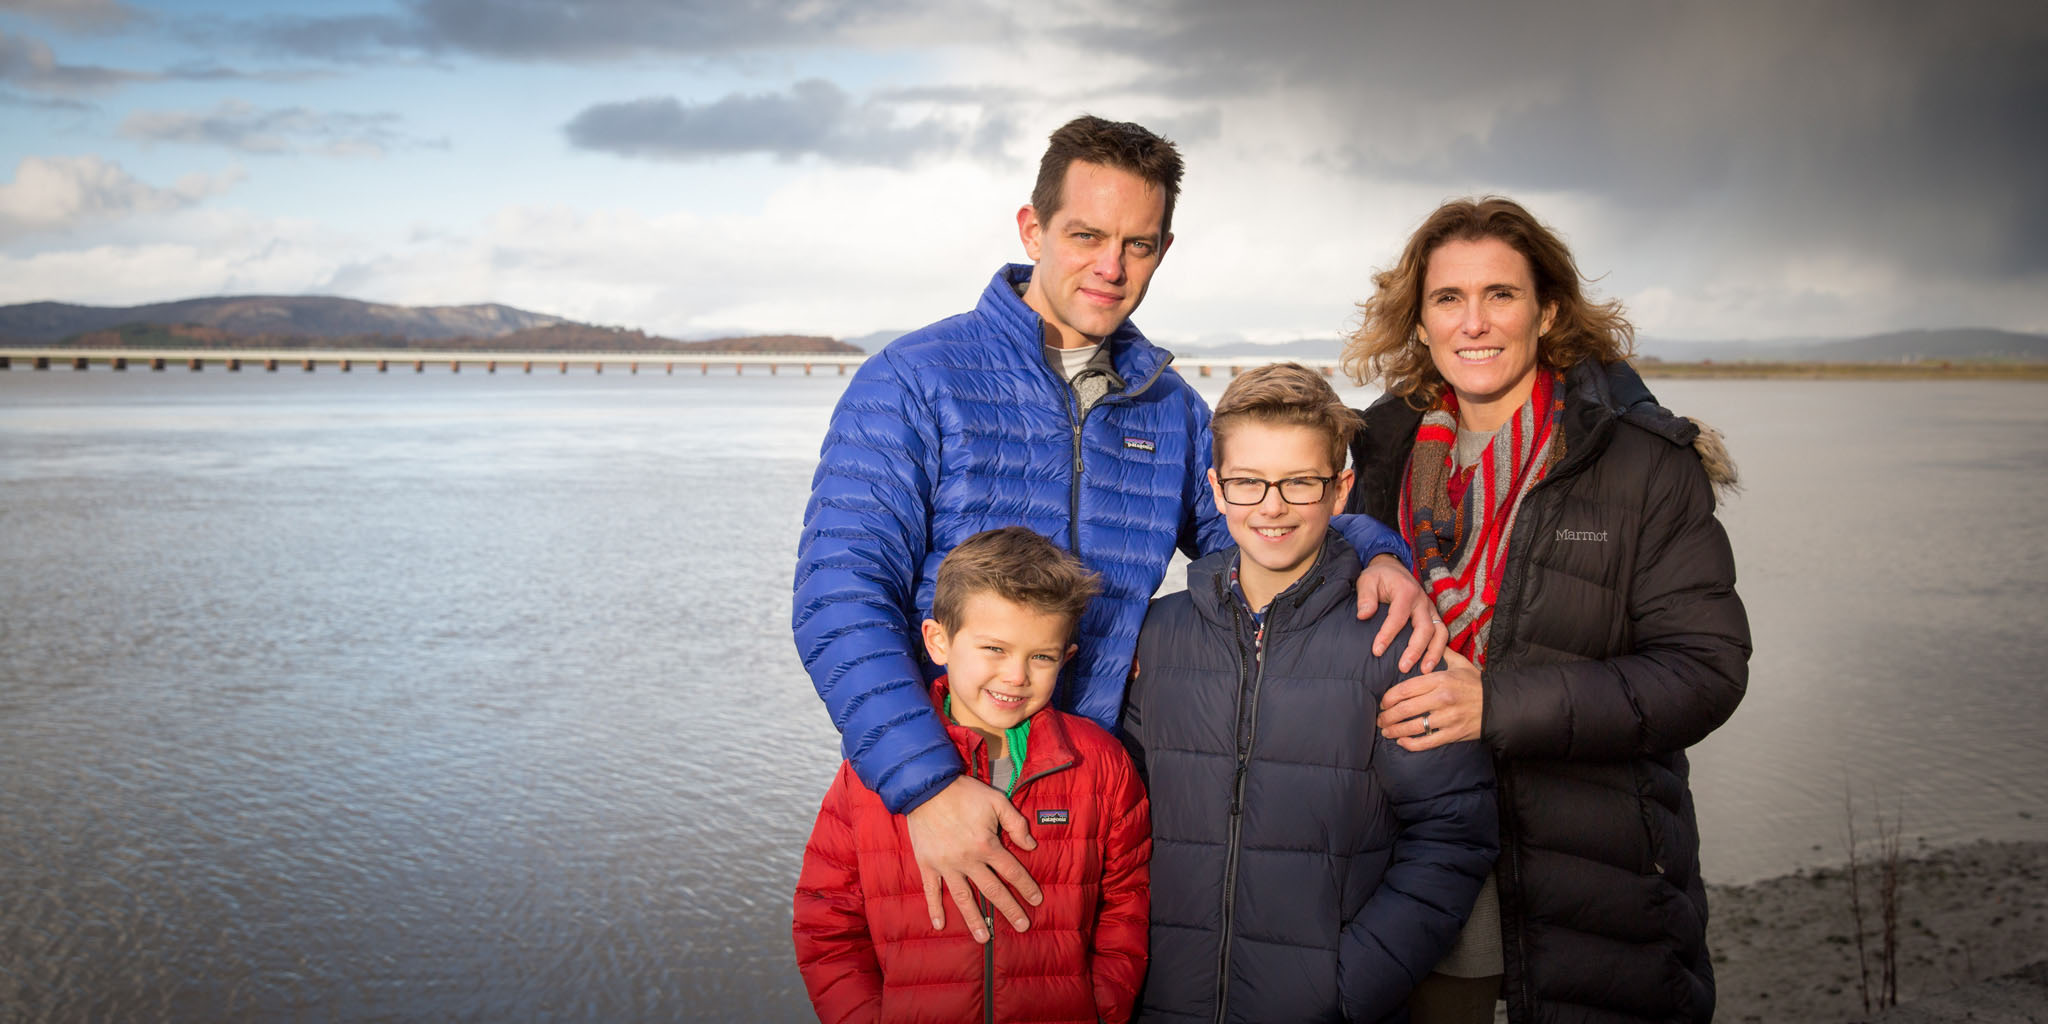 Lifestyle family portrait photography of a young family by the river Kent in Arnside, Cumbria